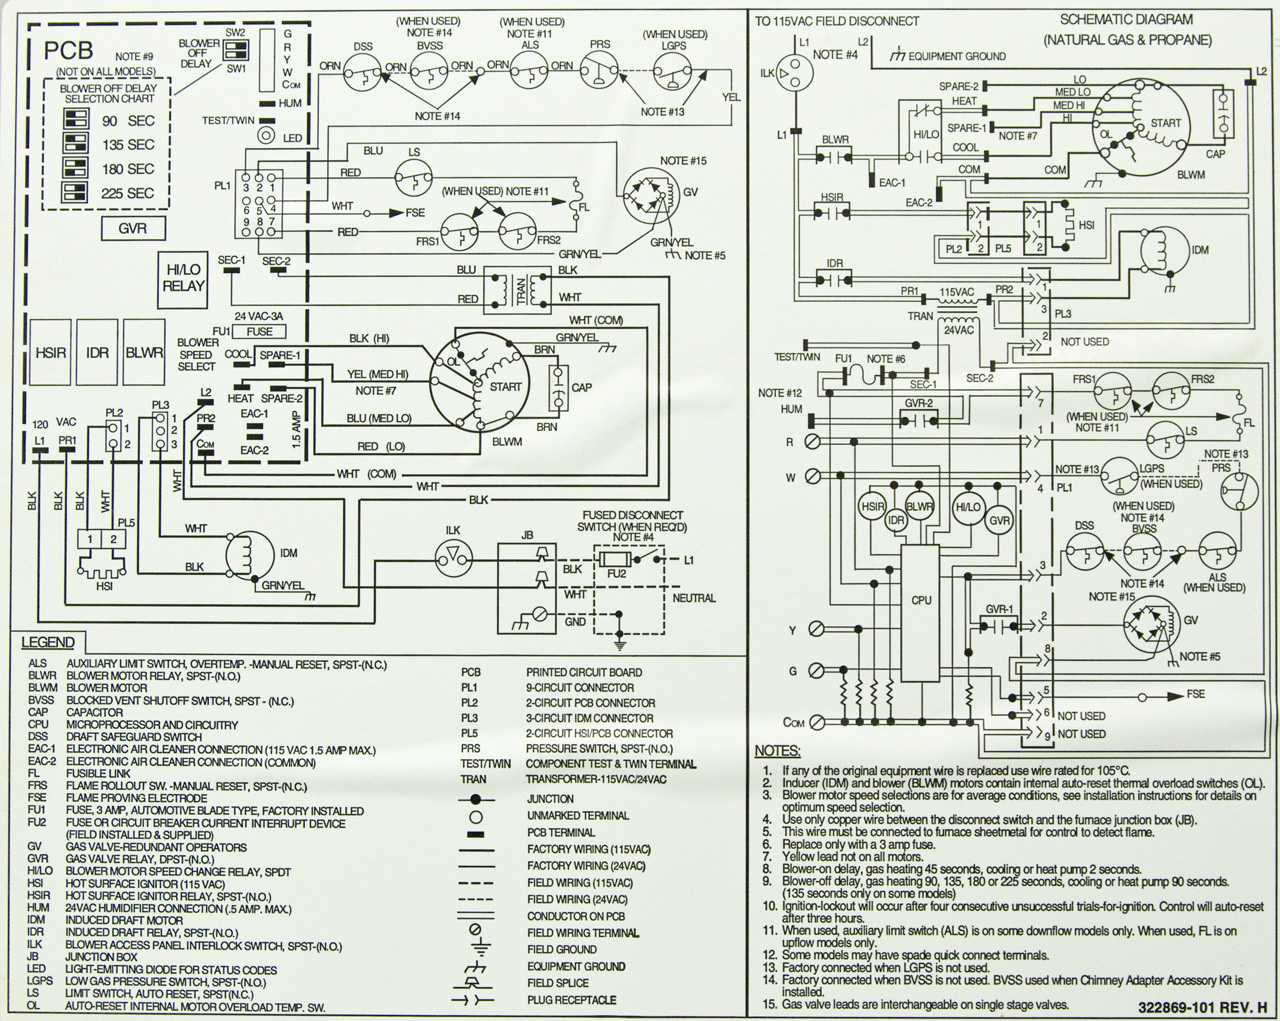 carrier electric furnace wiring diagram 1995 mitsubishi eclipse control board get free image